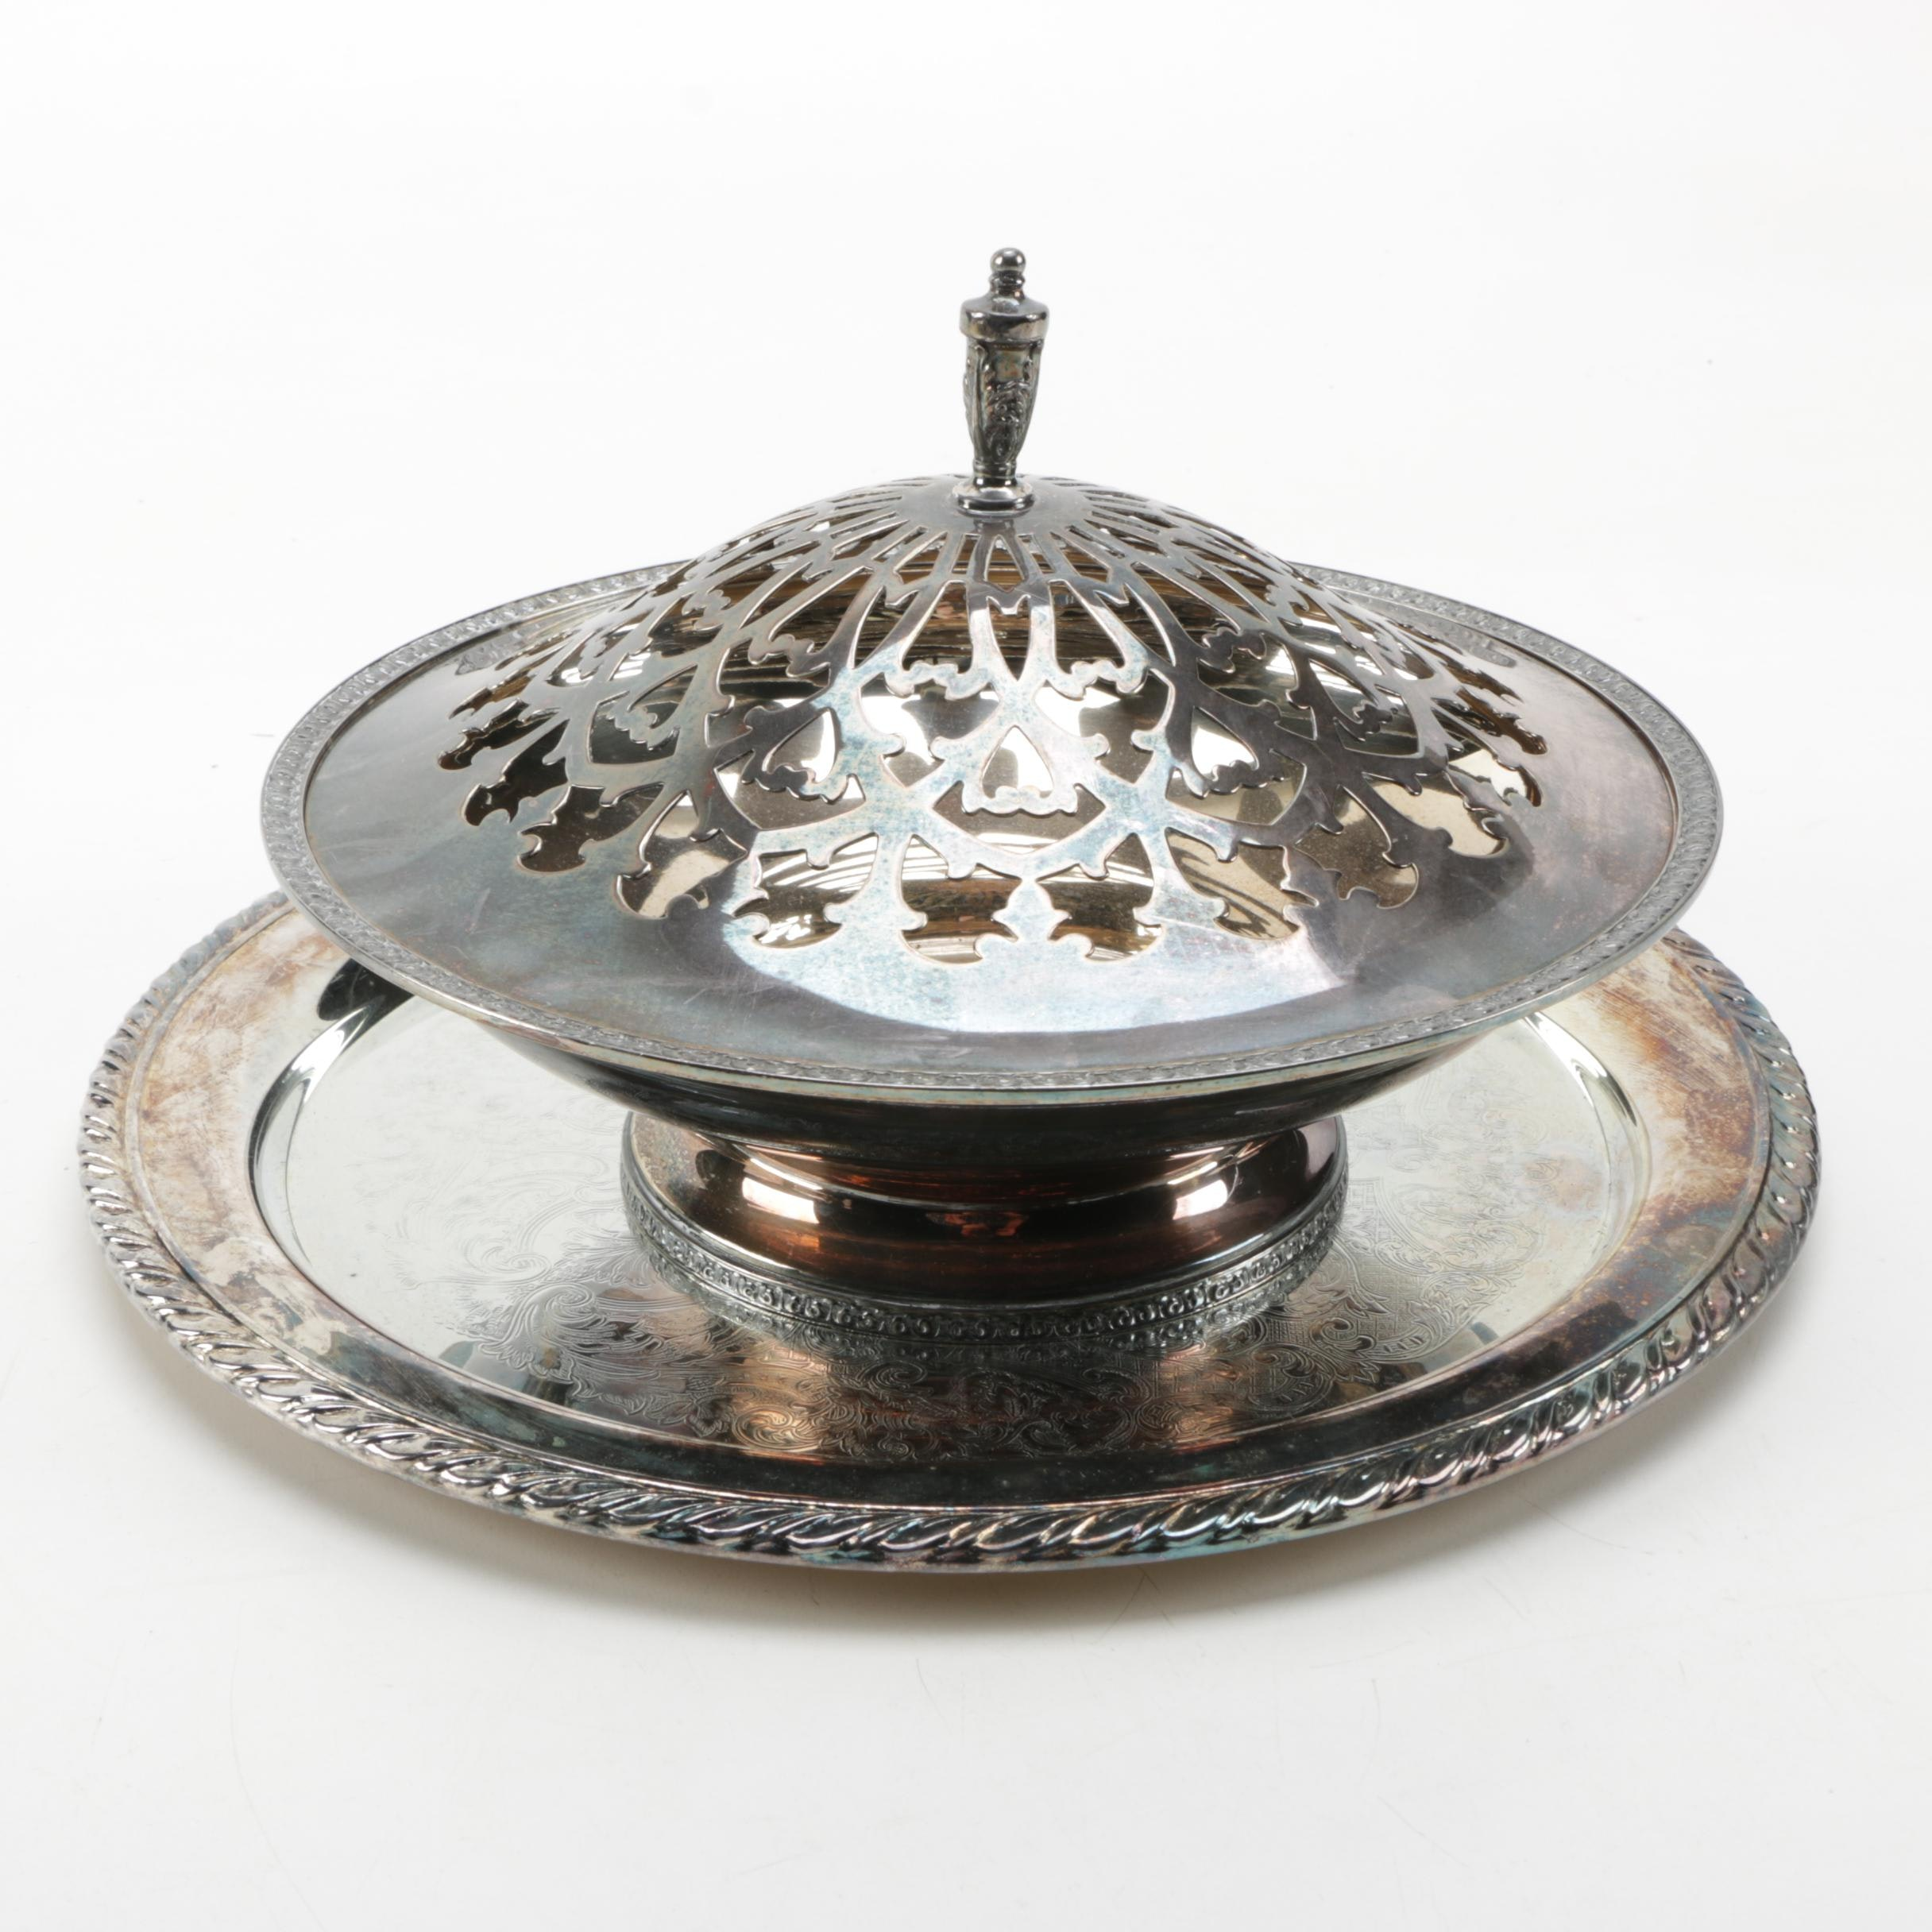 Wallace-Wallingford Co. Silver Plate Centerpiece Bowl with Oneida Serving Tray